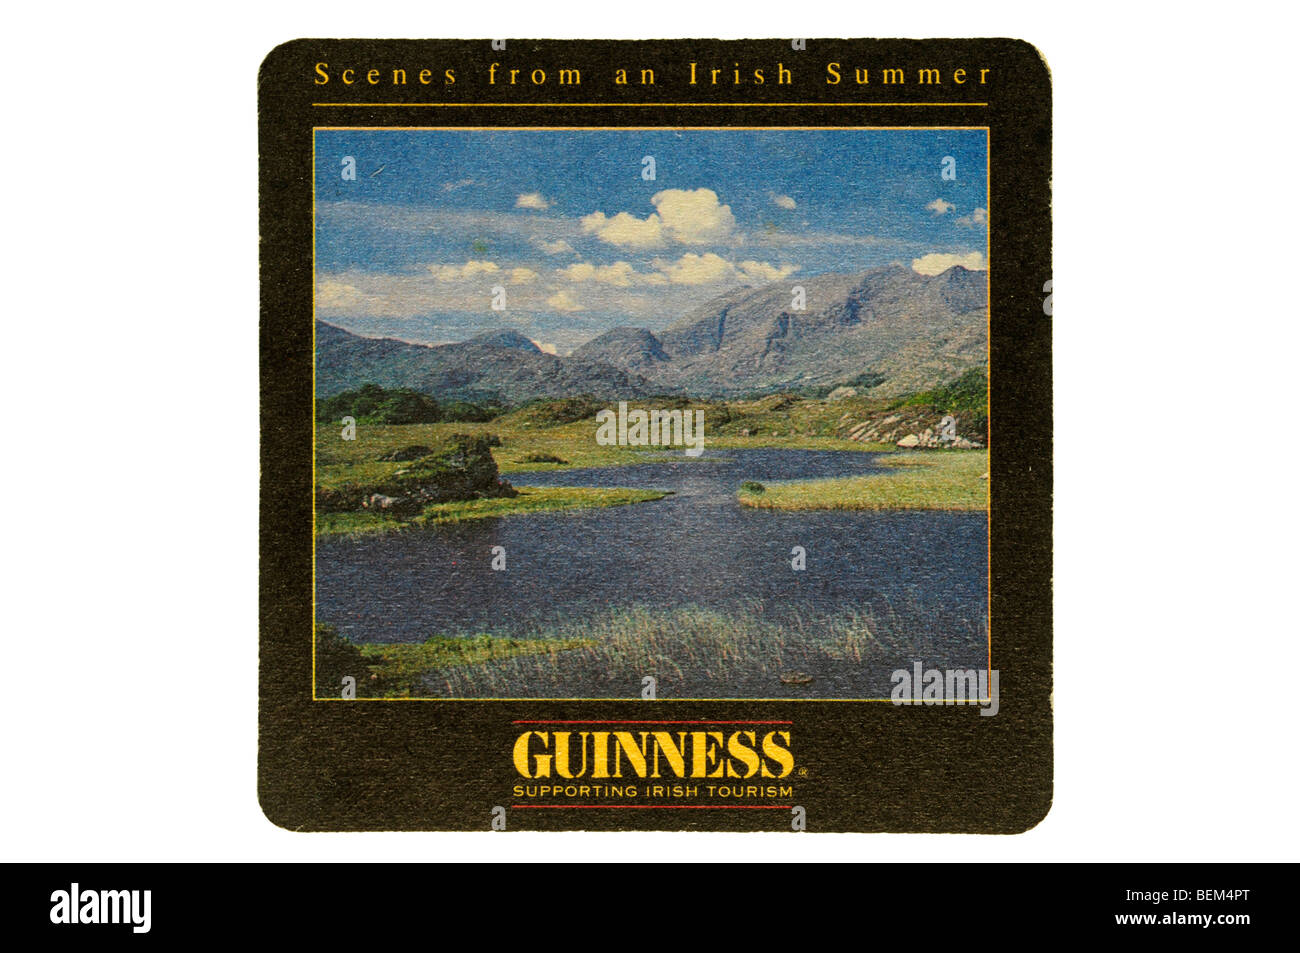 scenes from an irish summer guinness supporting irish tourism - Stock Image